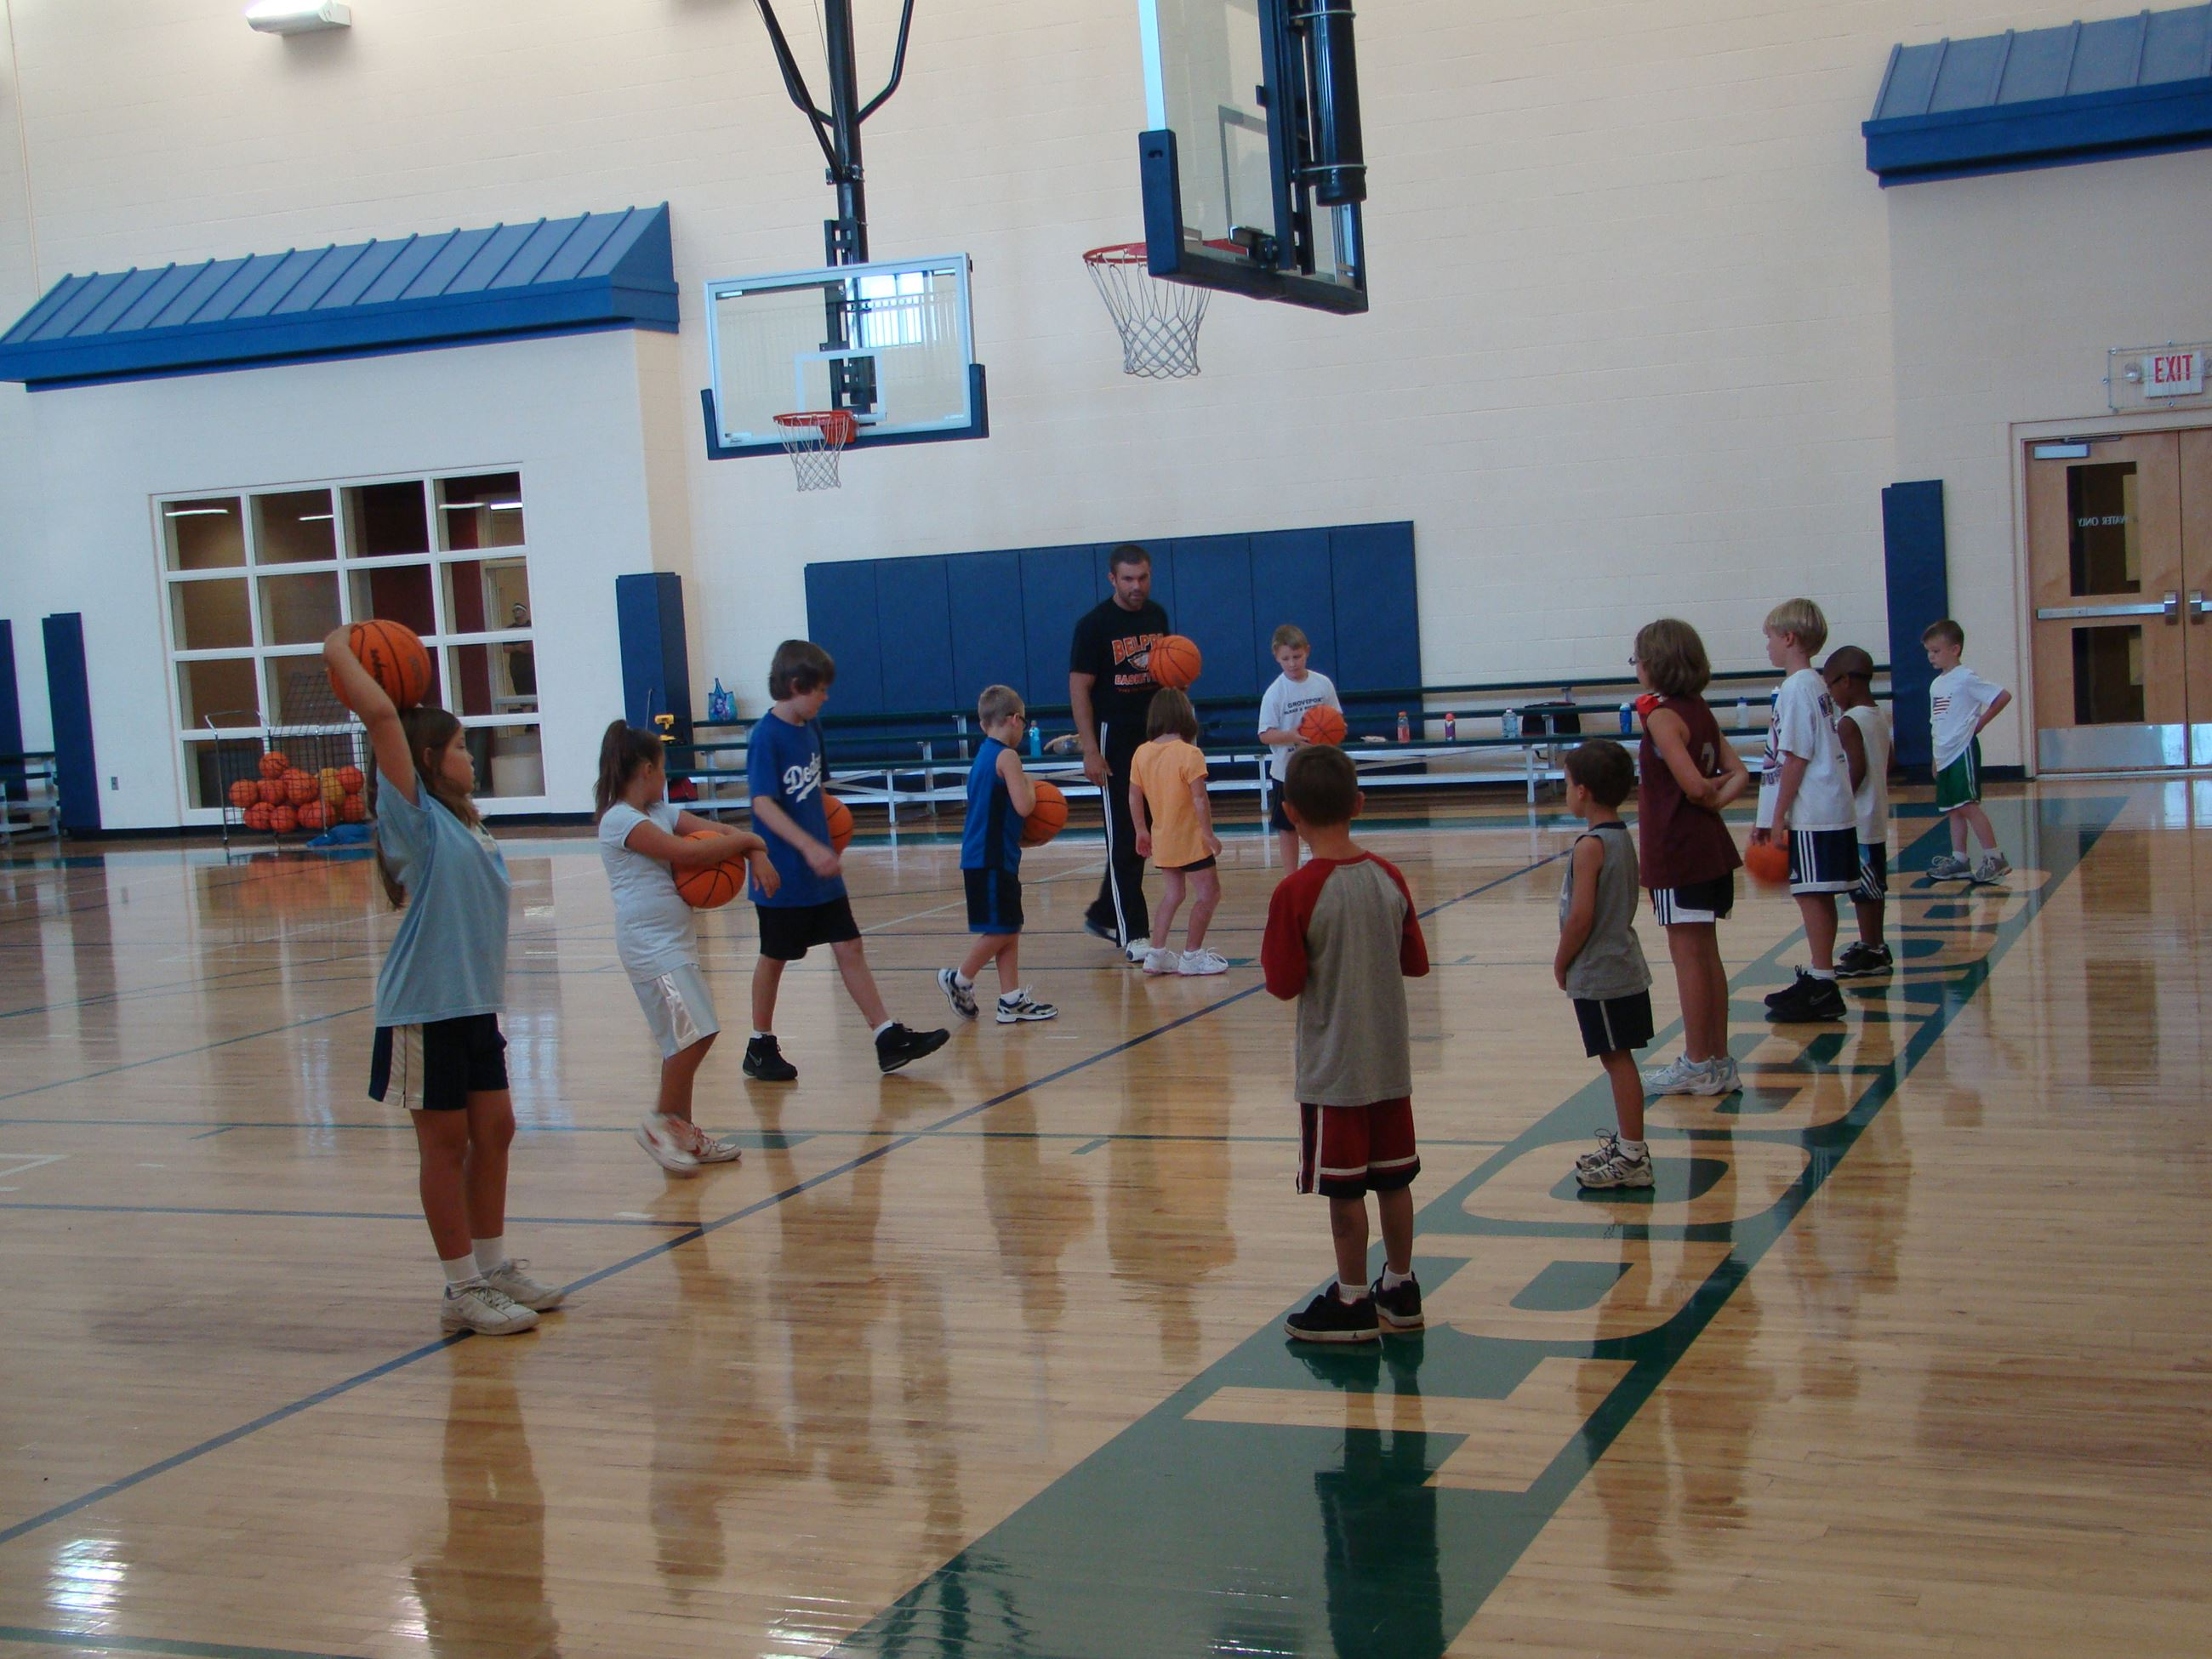 Youth practicing basketball in the Recreation Center gymnasium.